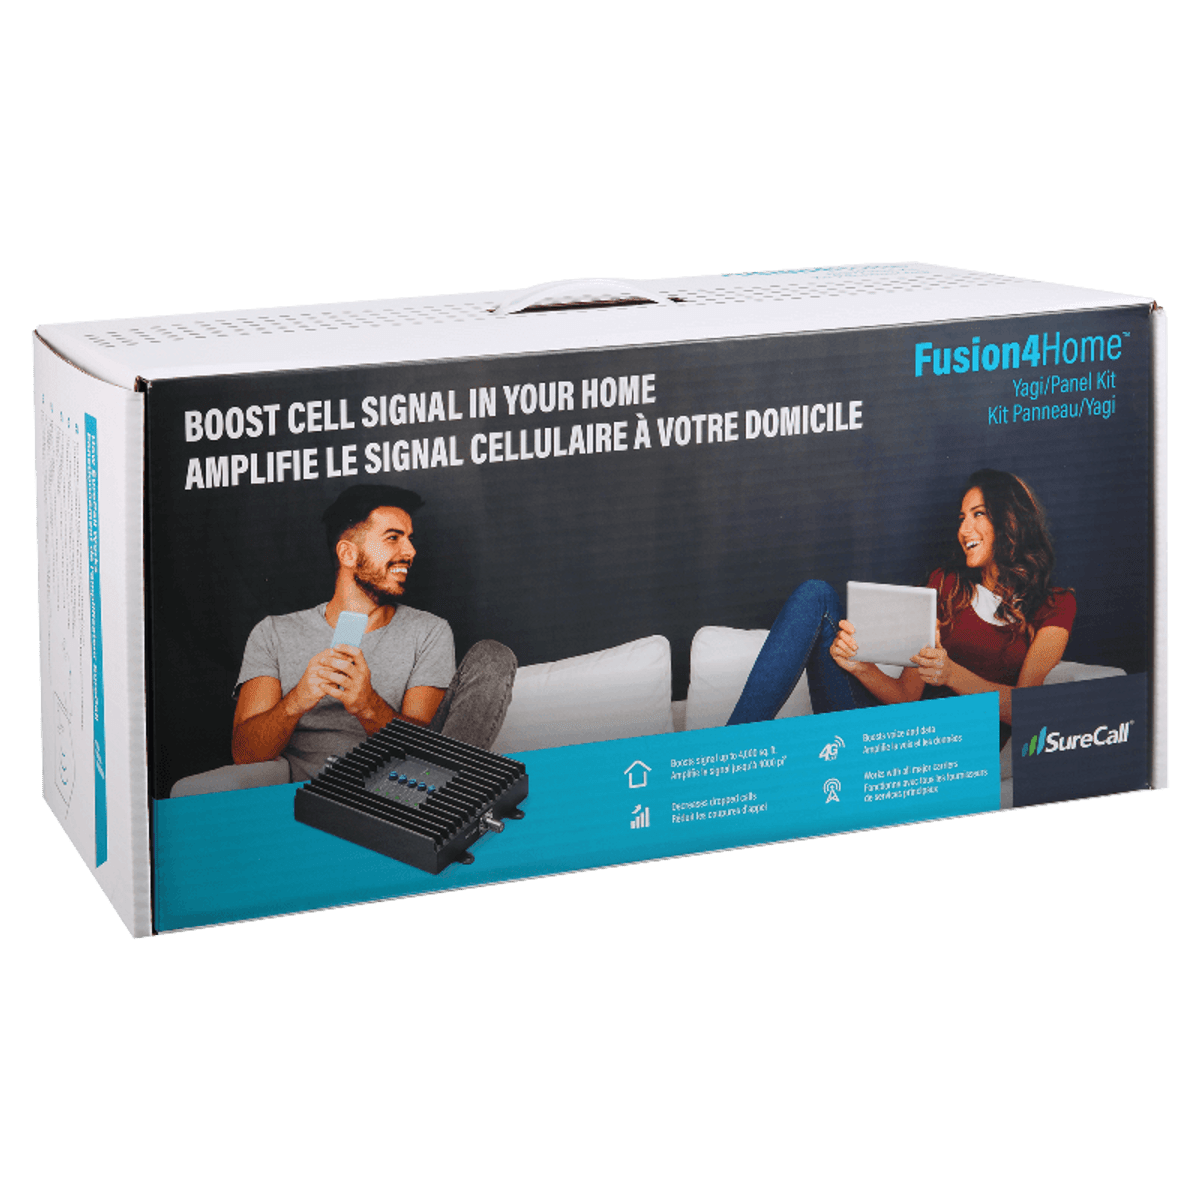 SureCall Fusion4Home Yagi Panel Signal Booster Kit Box